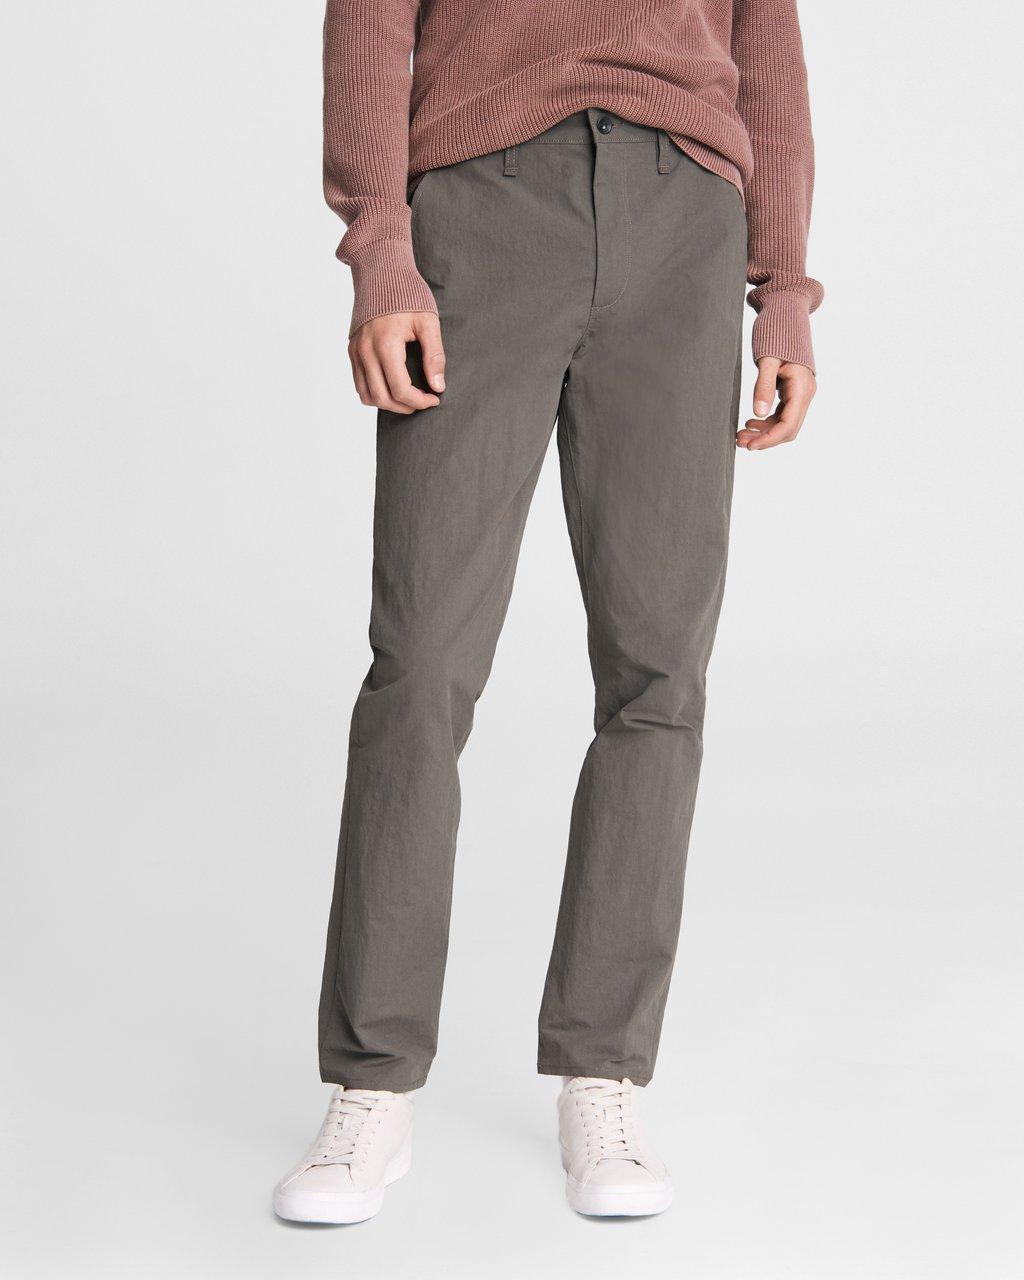 Fit 2 Mid-Rise Water Resistant Chino